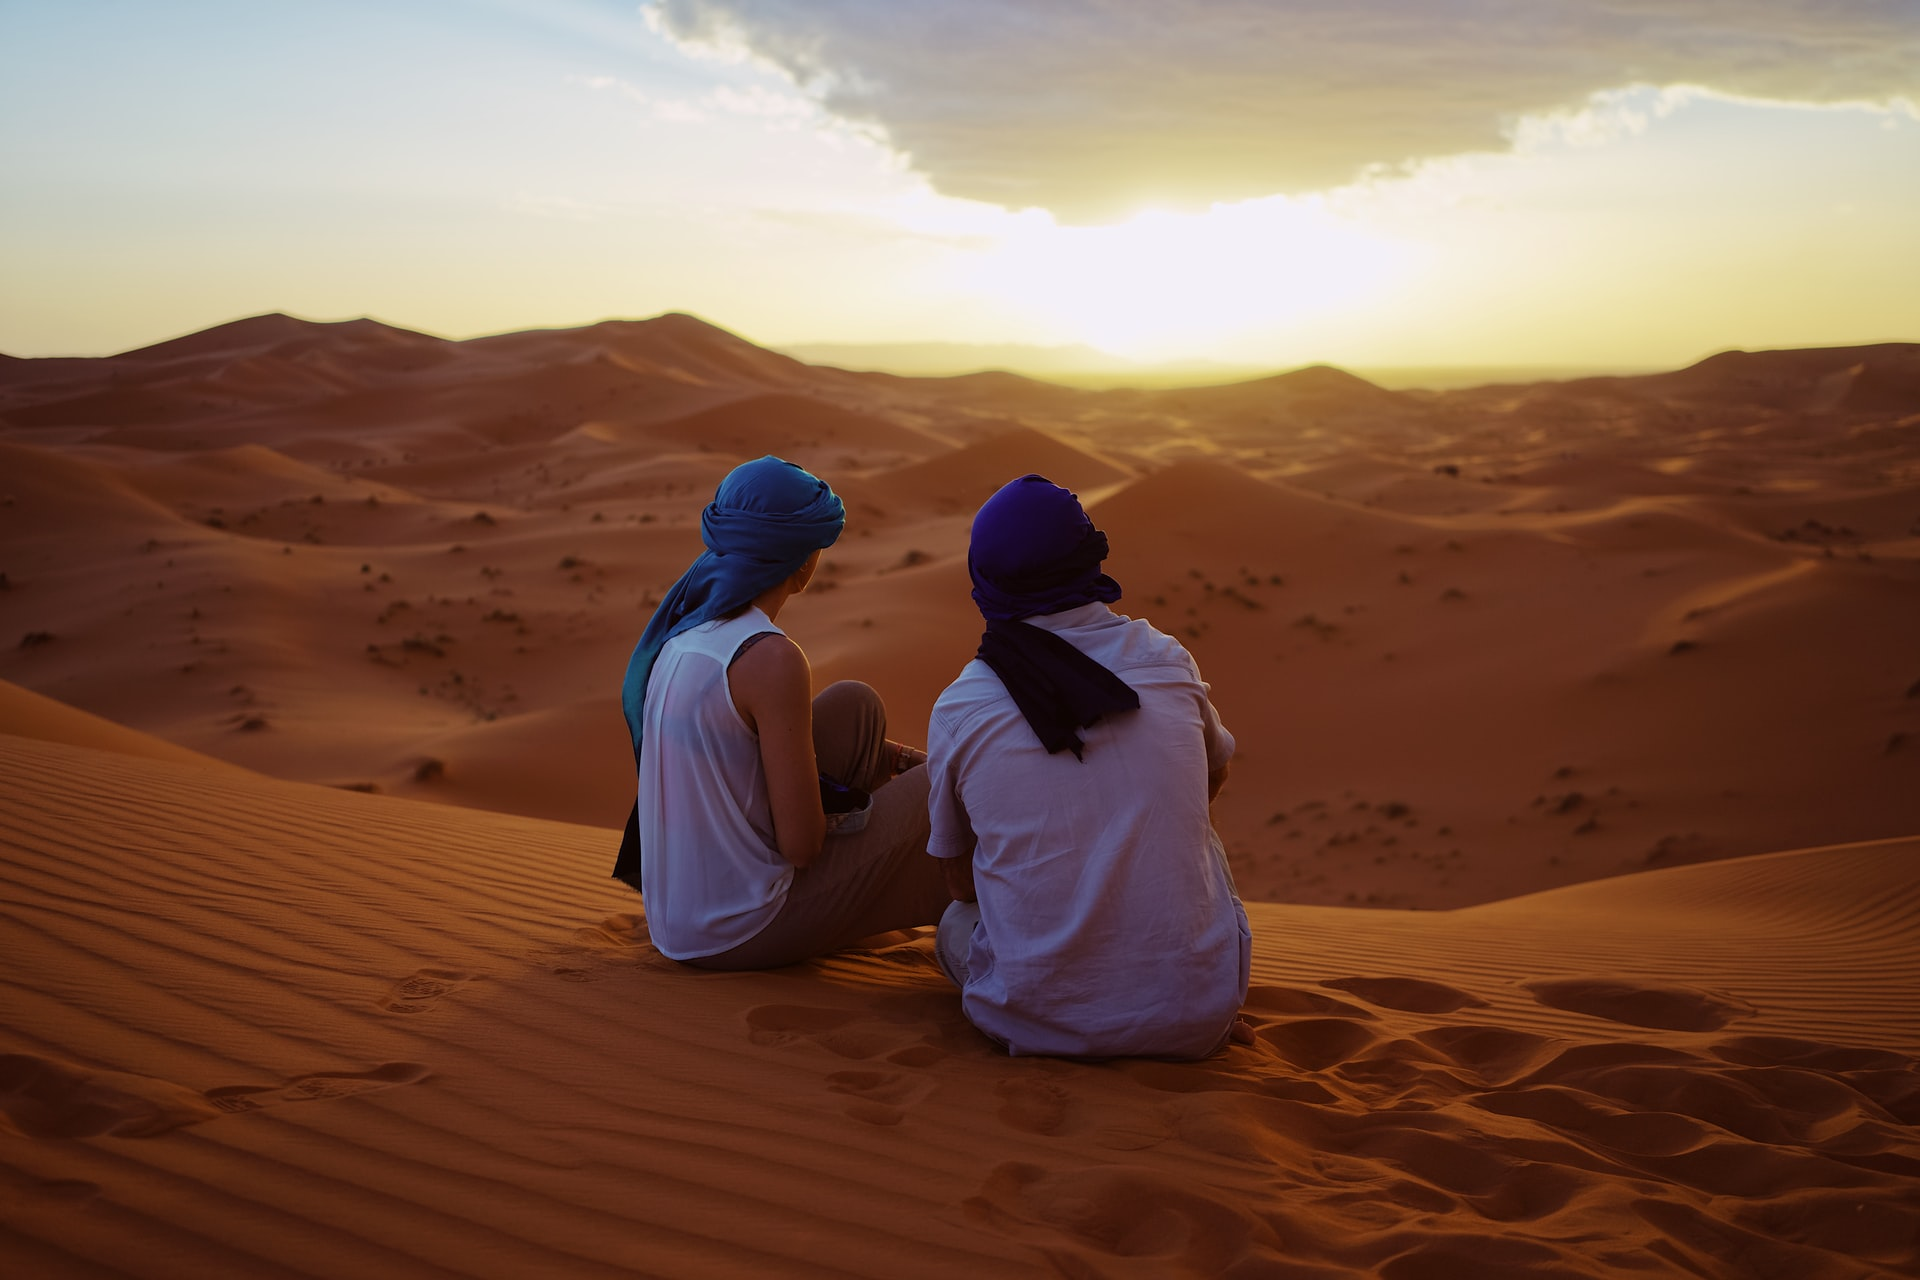 Man and woman with head gear looking at a sunset over a desert in Morocco.